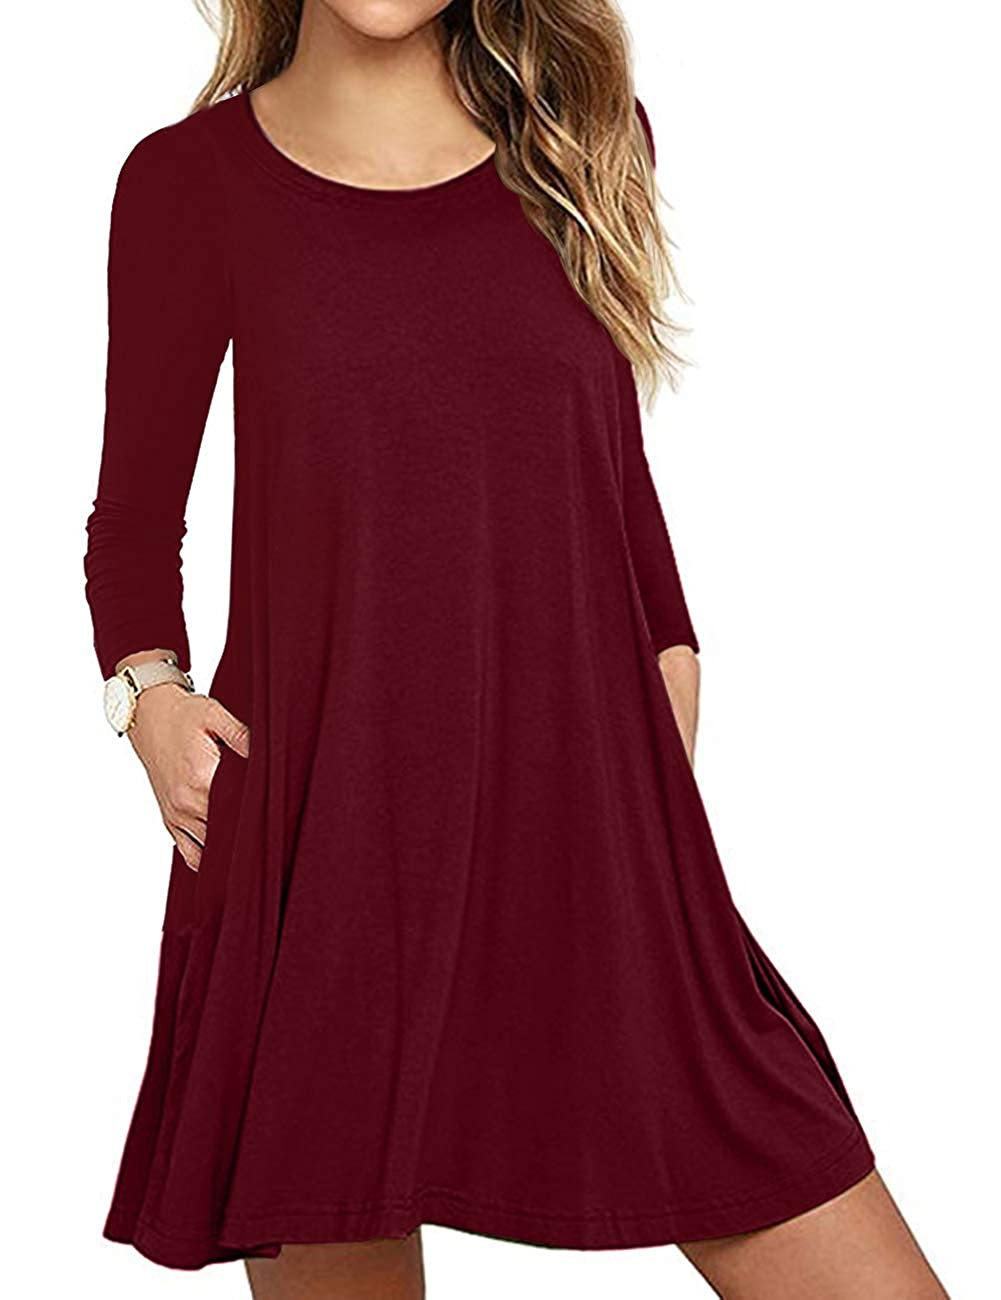 Sanifer Womens Casual Long Sleeve T Shirt Dress With Pockets Plus